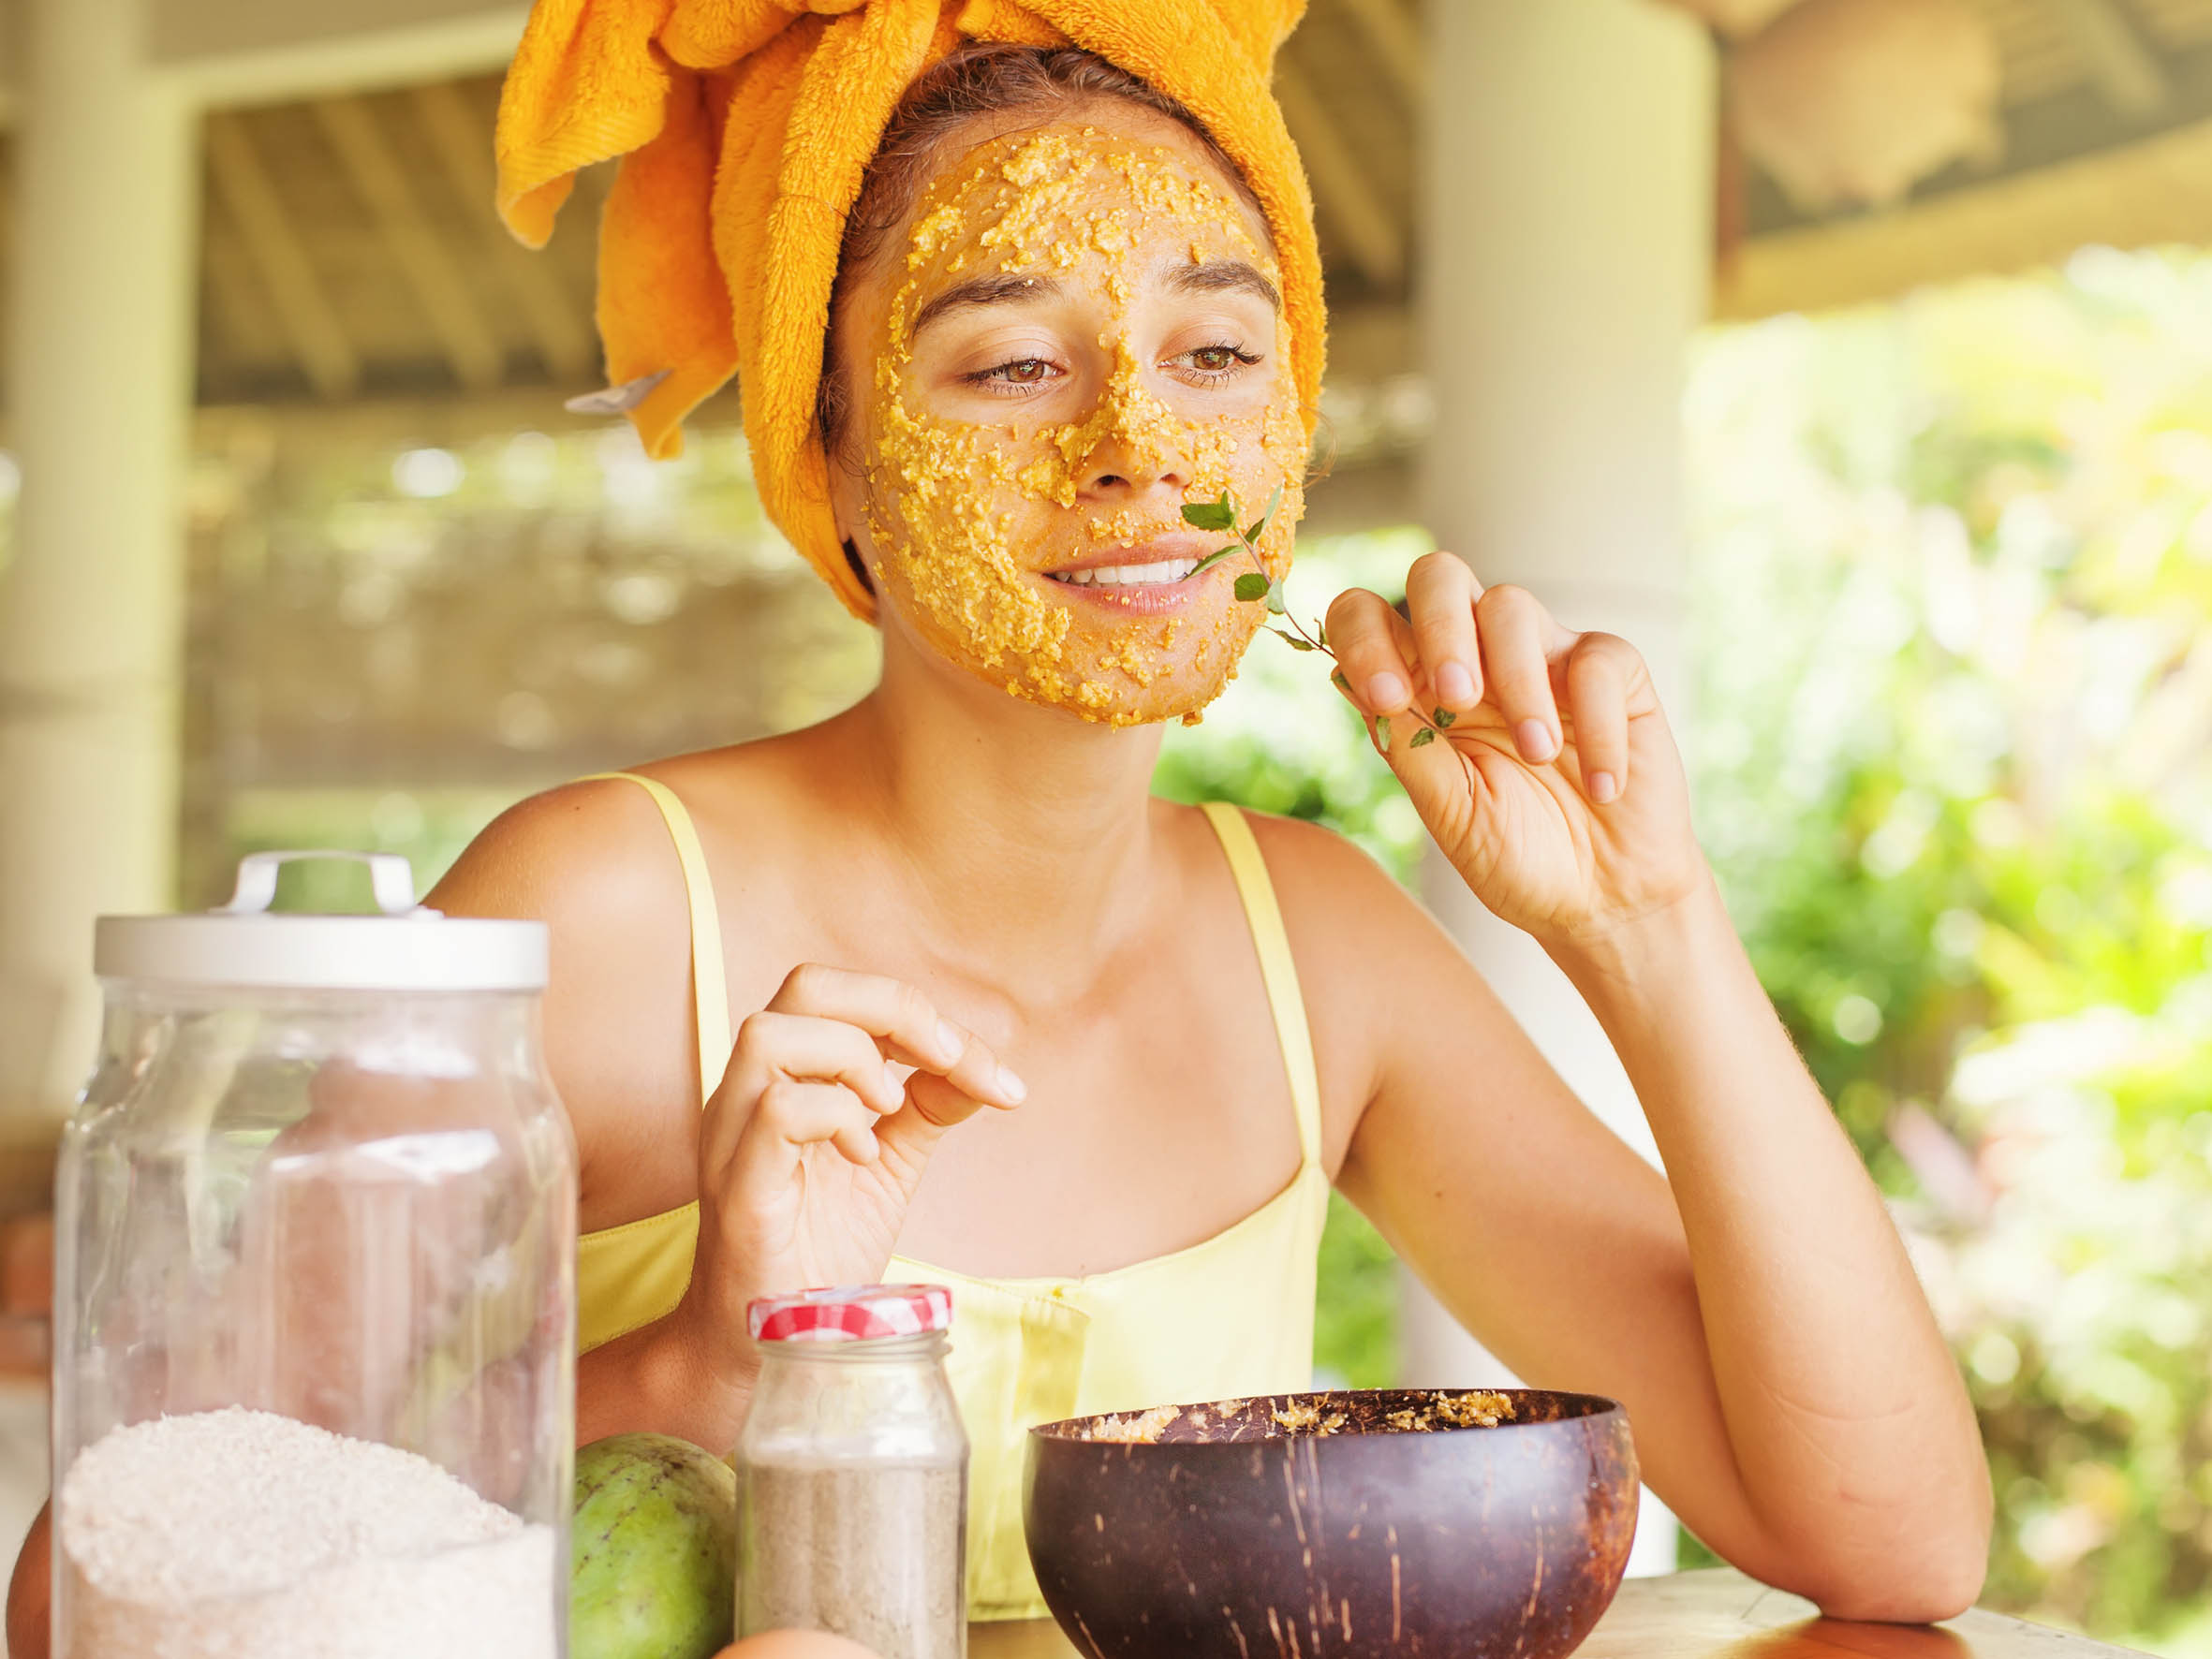 Do it yourself recipes for skin care